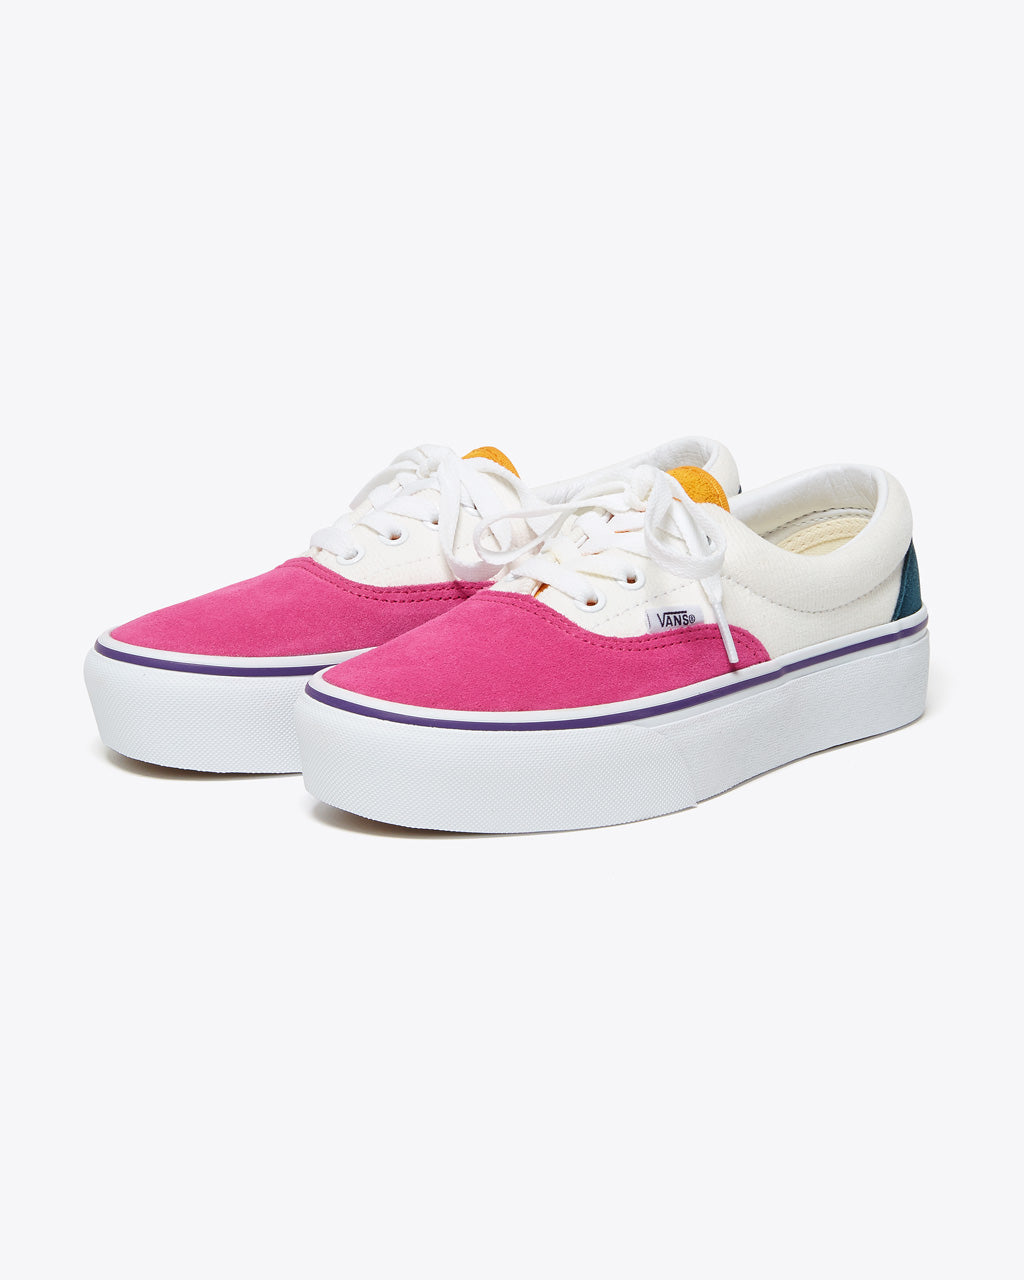 Pink, white, yellow, and navy lace-up tennis shoes with white platform sole.